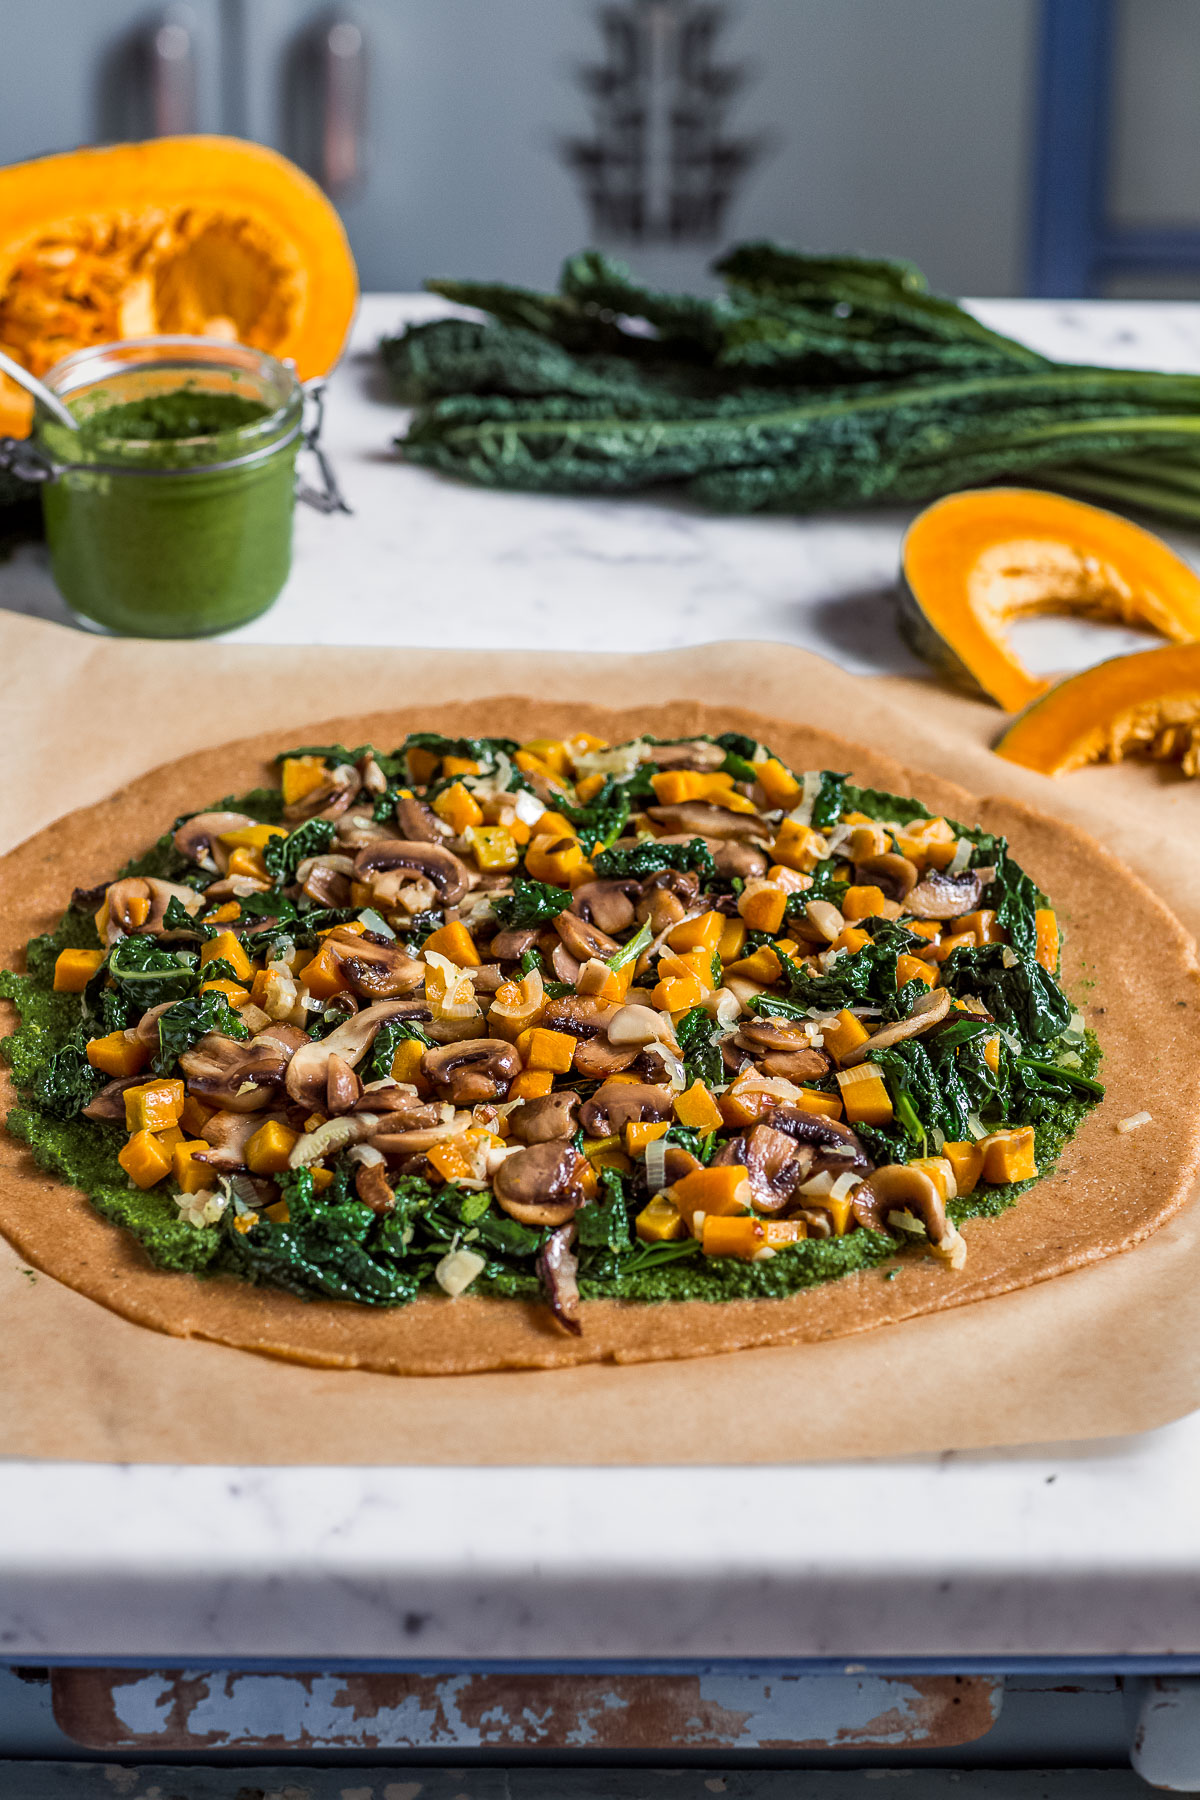 VEGAN Mushroom #Pumpkin GALETTE with #kale pesto and vegetables Torta salata zucca e funghi vegan con verdure e pesto di cavolo nero